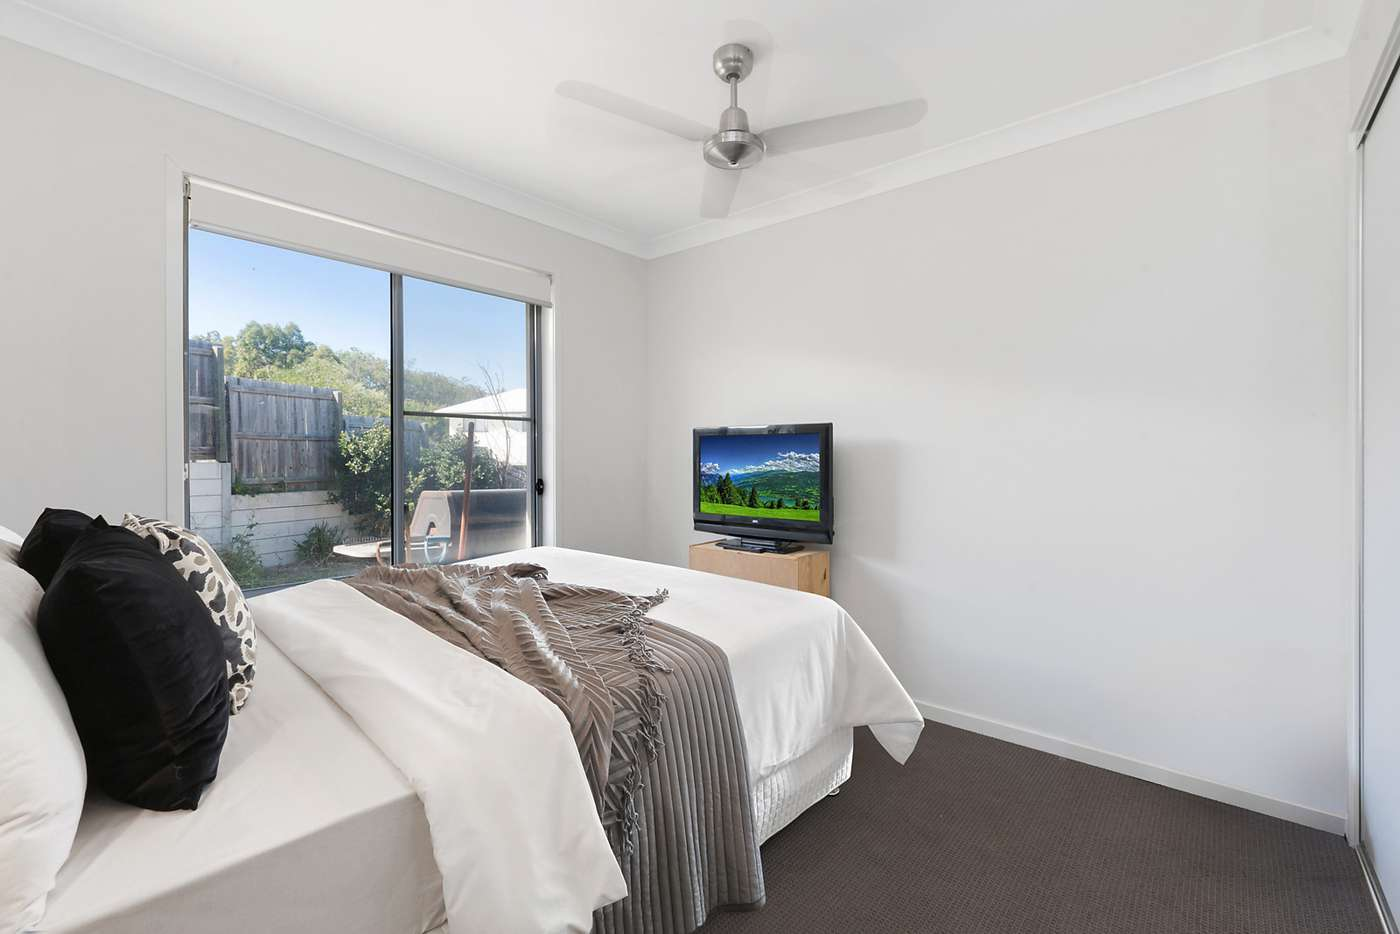 Sixth view of Homely house listing, 21 Nova Street, Waterford QLD 4133